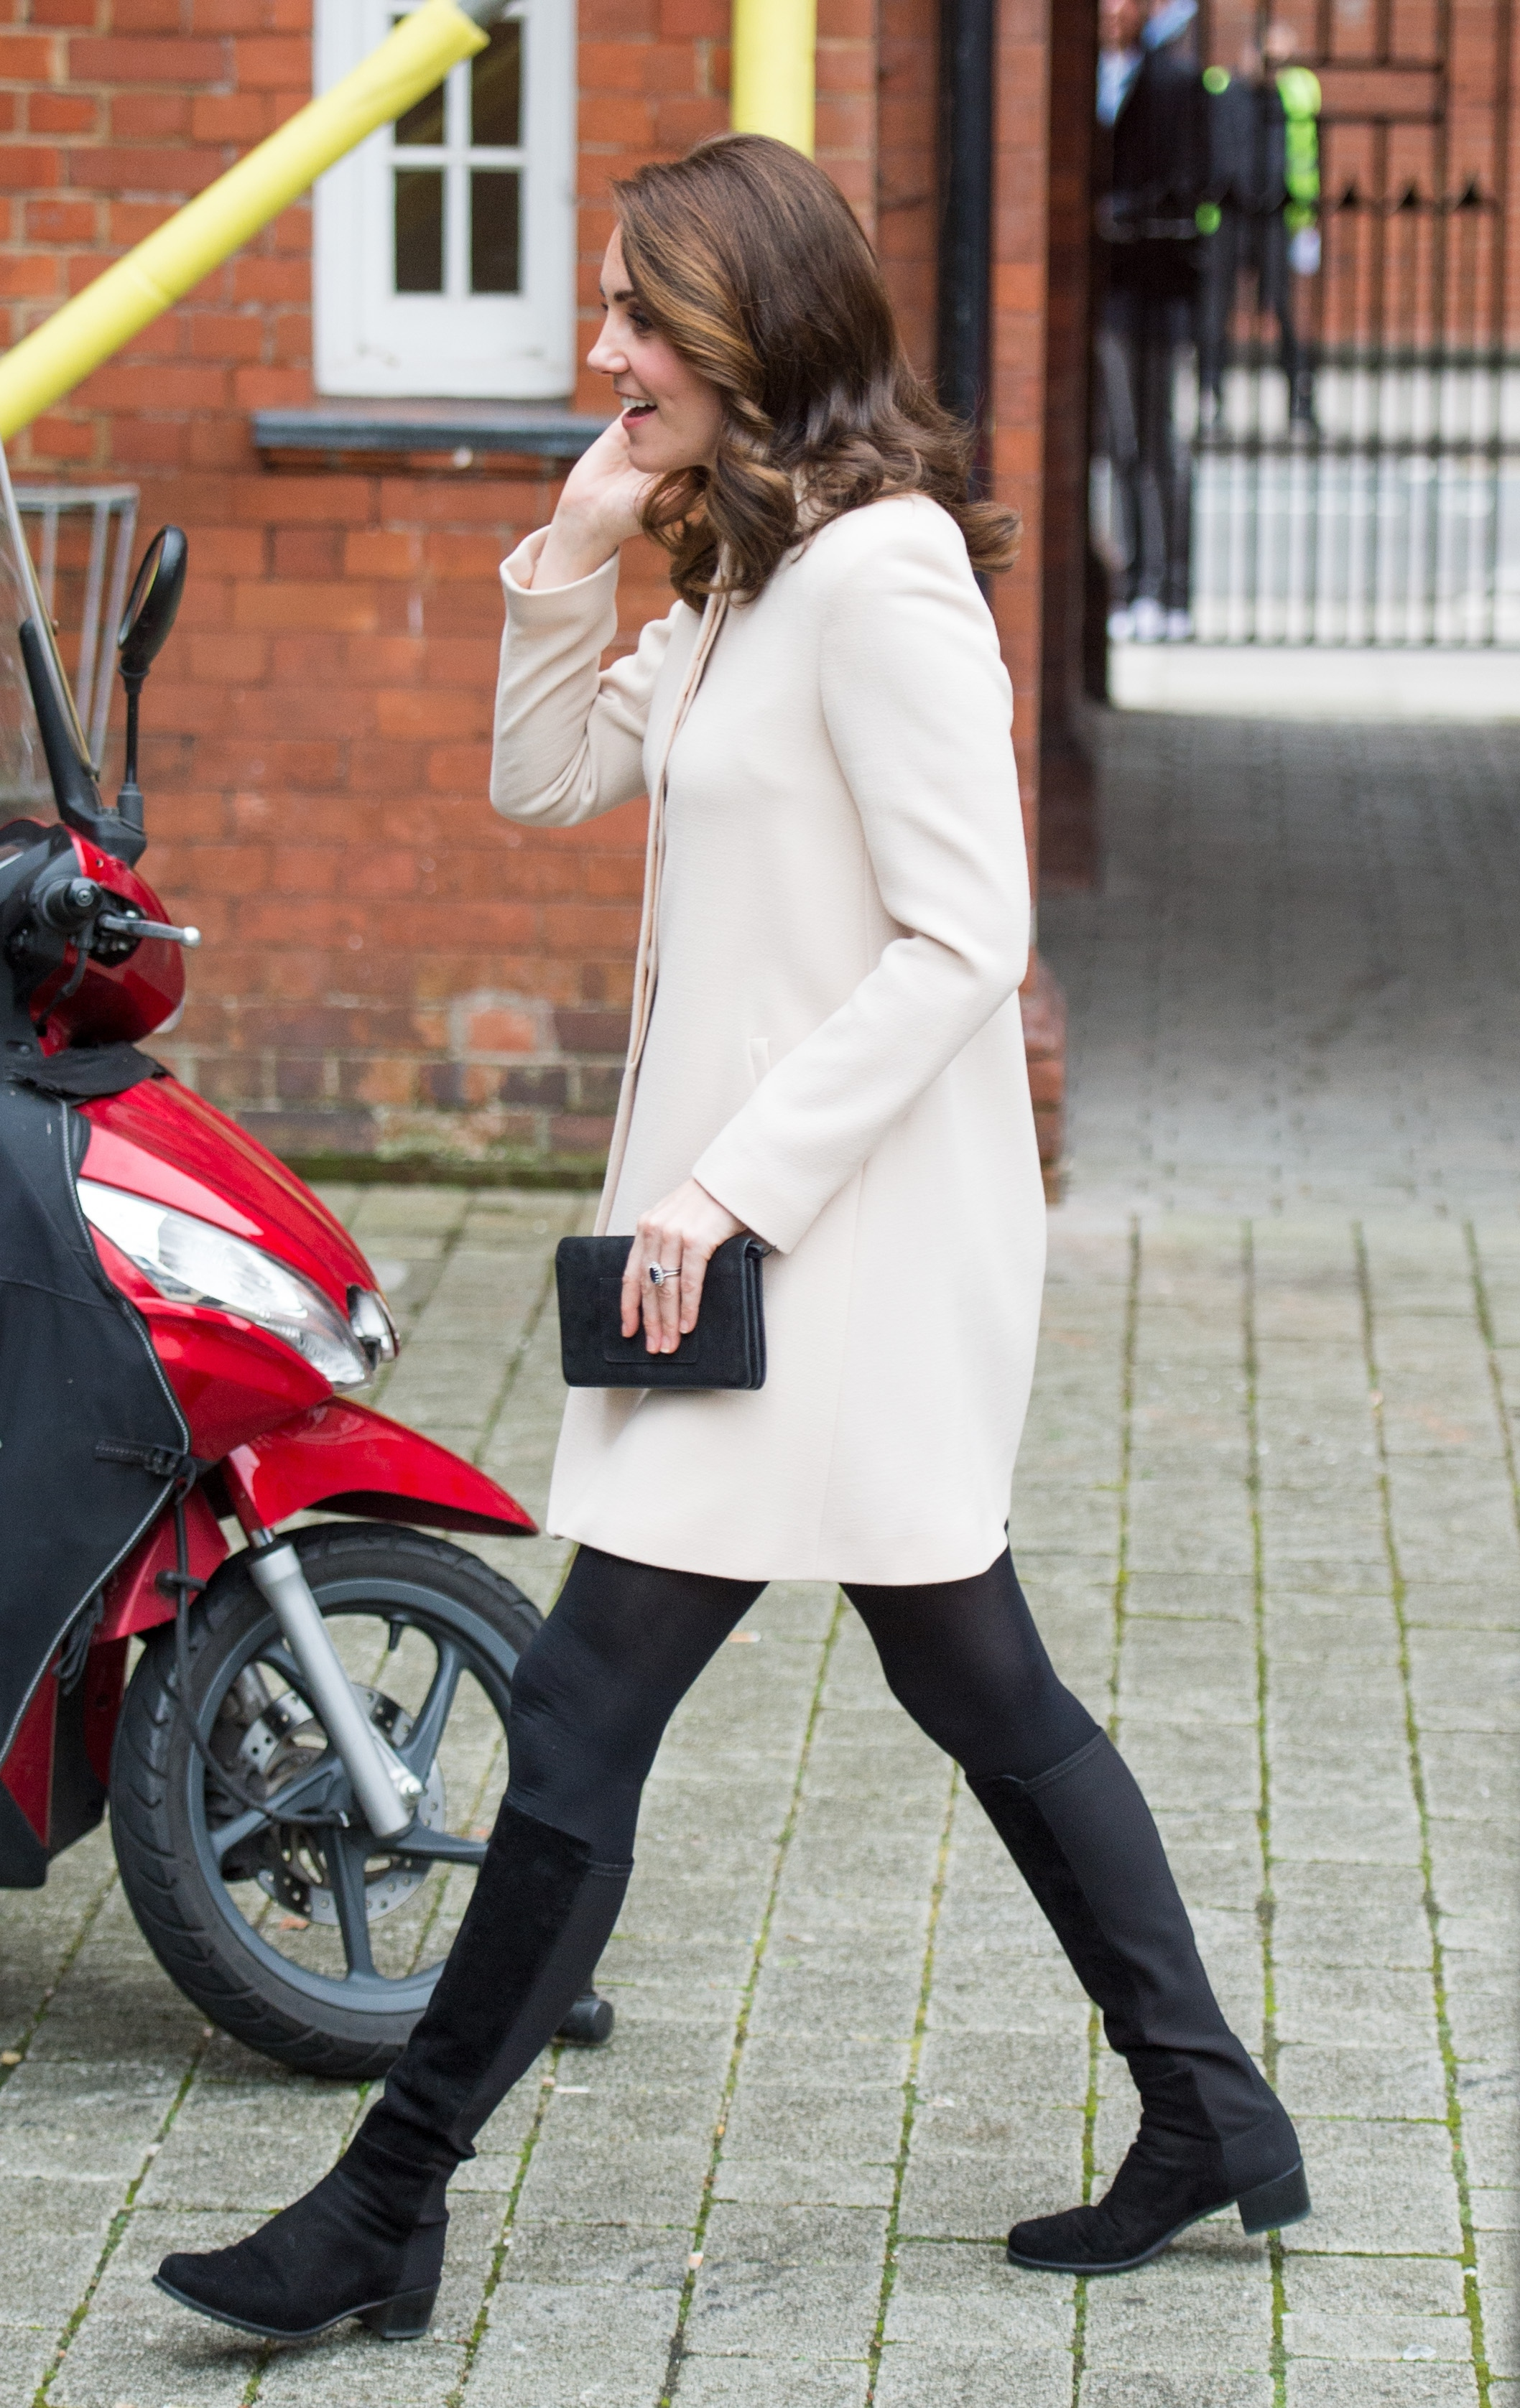 Photo Credit Must Read Zak Hussein<BR/> Catherine, the Duchess of Cambridge visits Hornsey Road Children's Centre in London <P> Pictured: Catherine, the Duchess of Cambridge <B>Ref: SPL1623353  141117  </B><BR/> Picture by: Zak Hussein<BR/> </P><P>